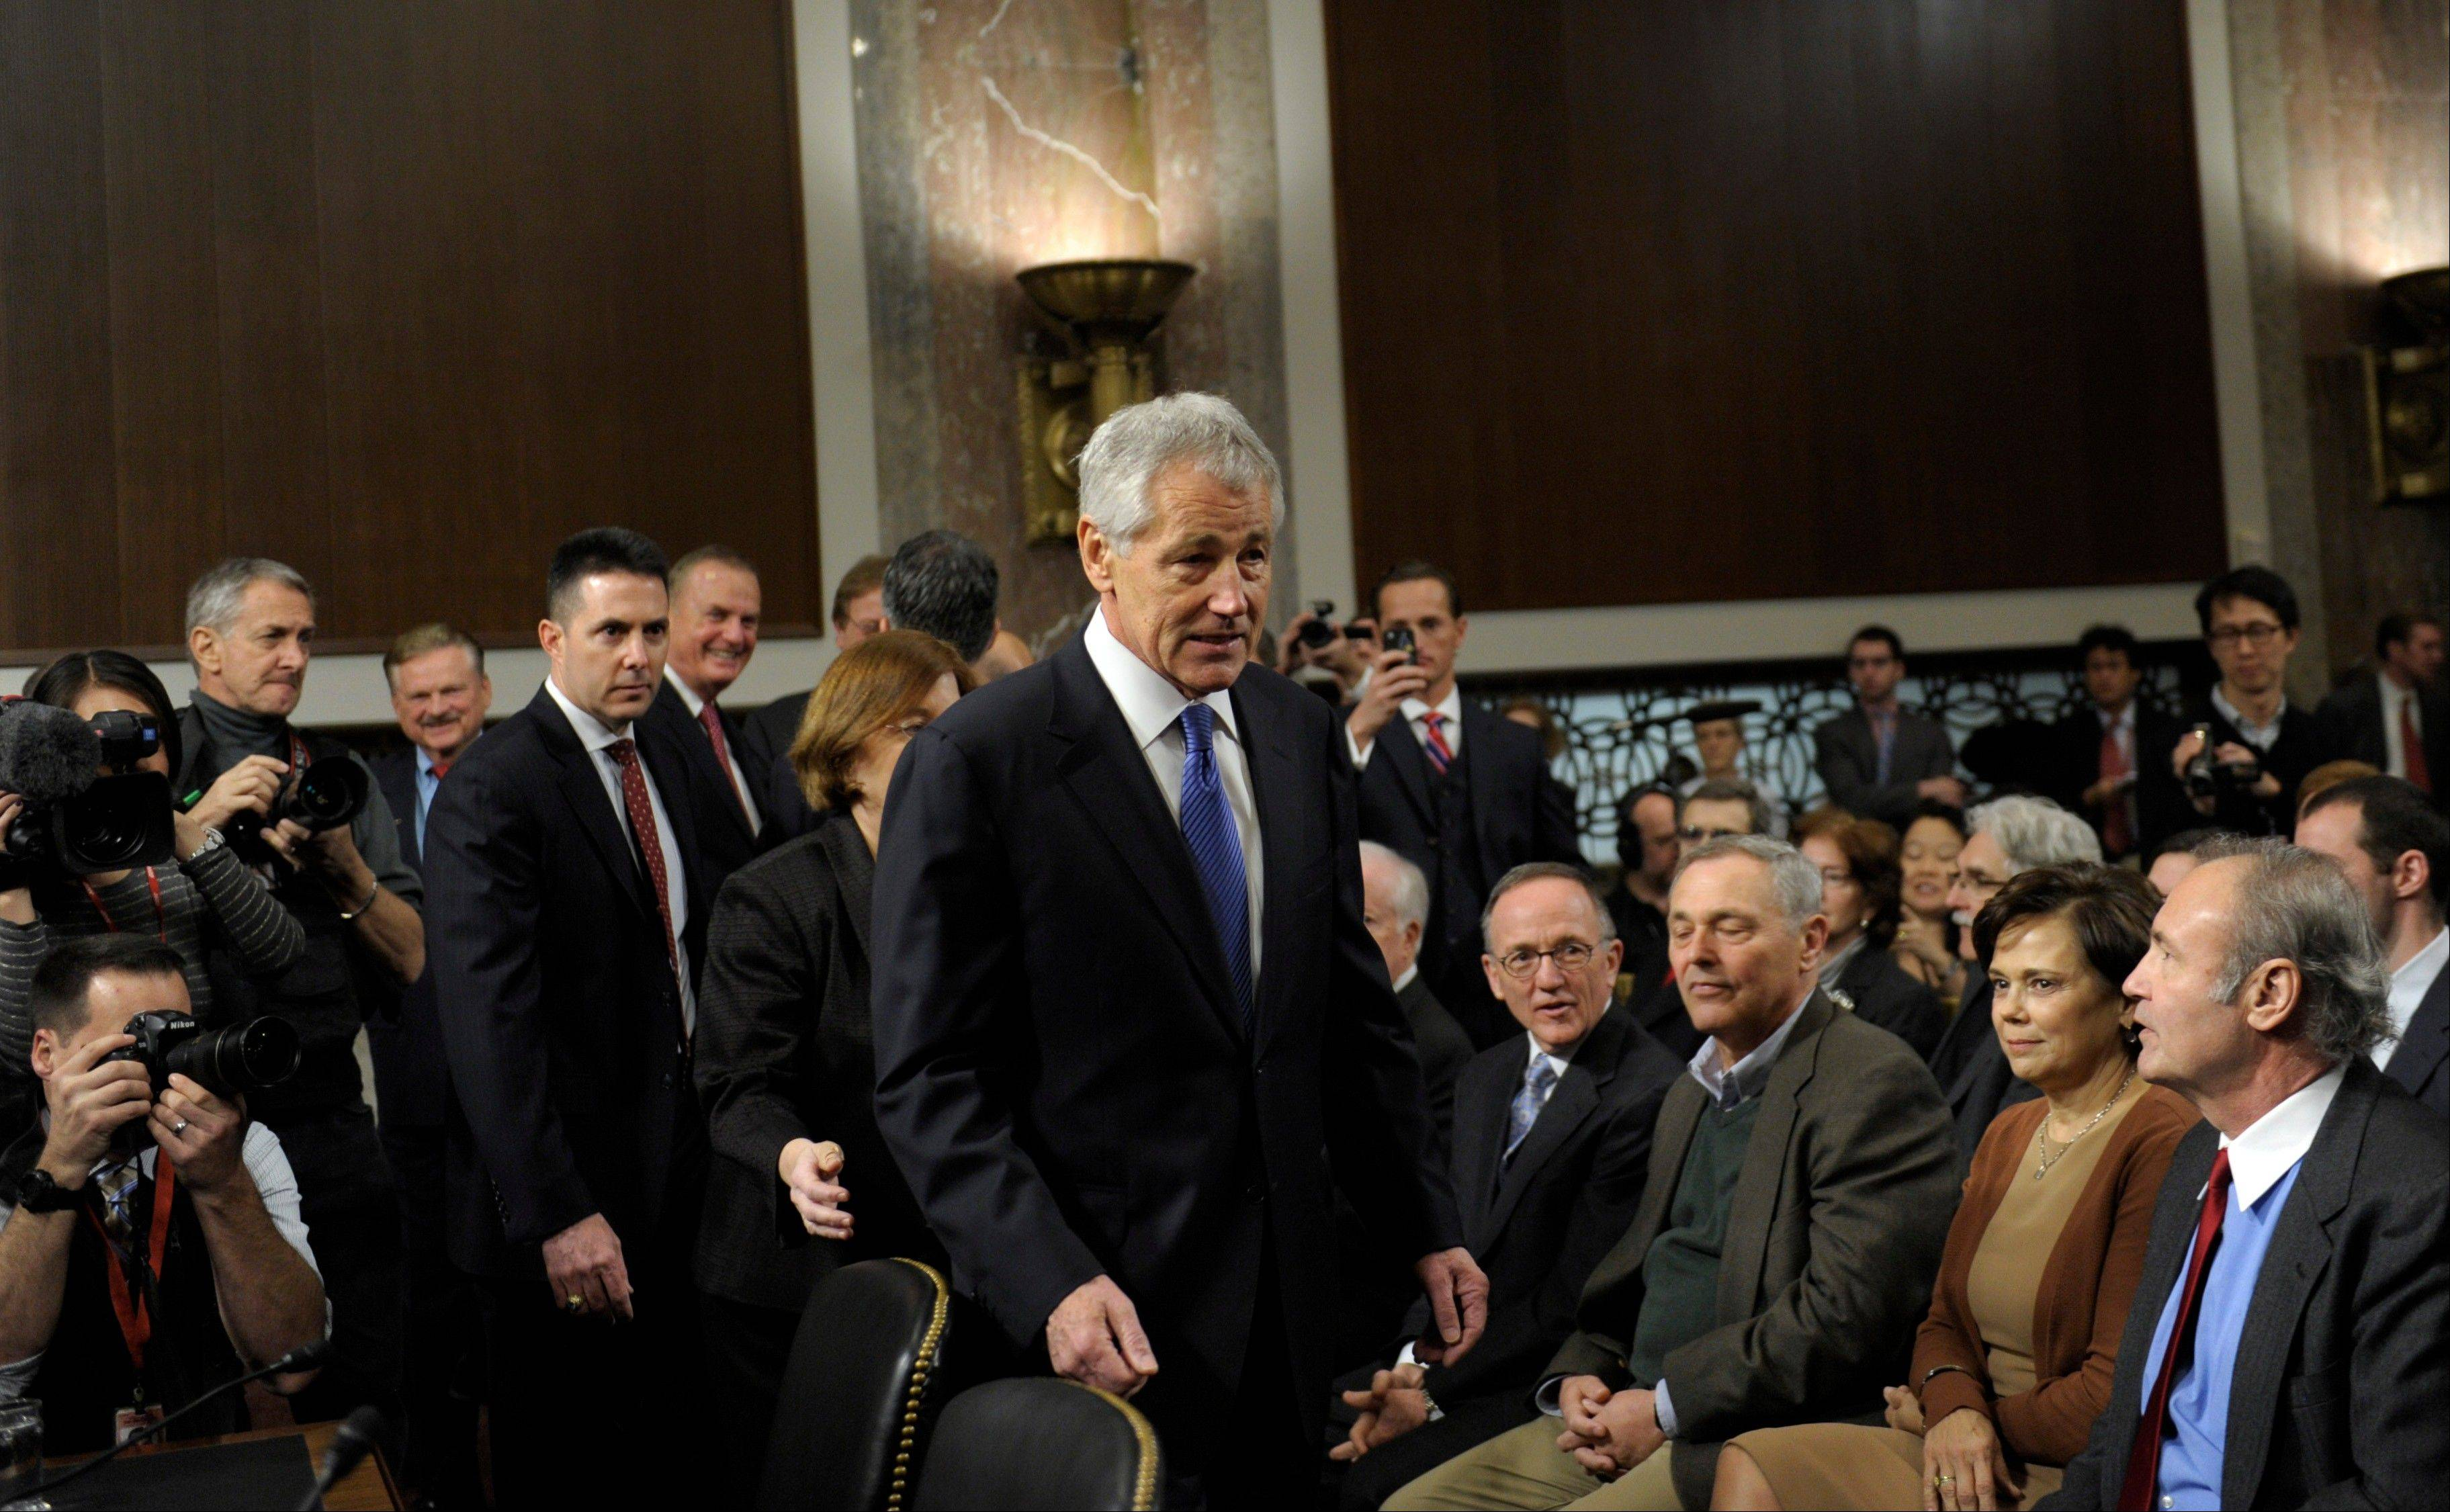 Former Republican Nebraska Sen. Chuck Hagel, President Barack Obama's choice for defense secretary, arrives on Capitol Hill in Washington, Thursday, Jan. 31, 2013, to testify before the Senate Armed Services Committee hearing on his nomination.